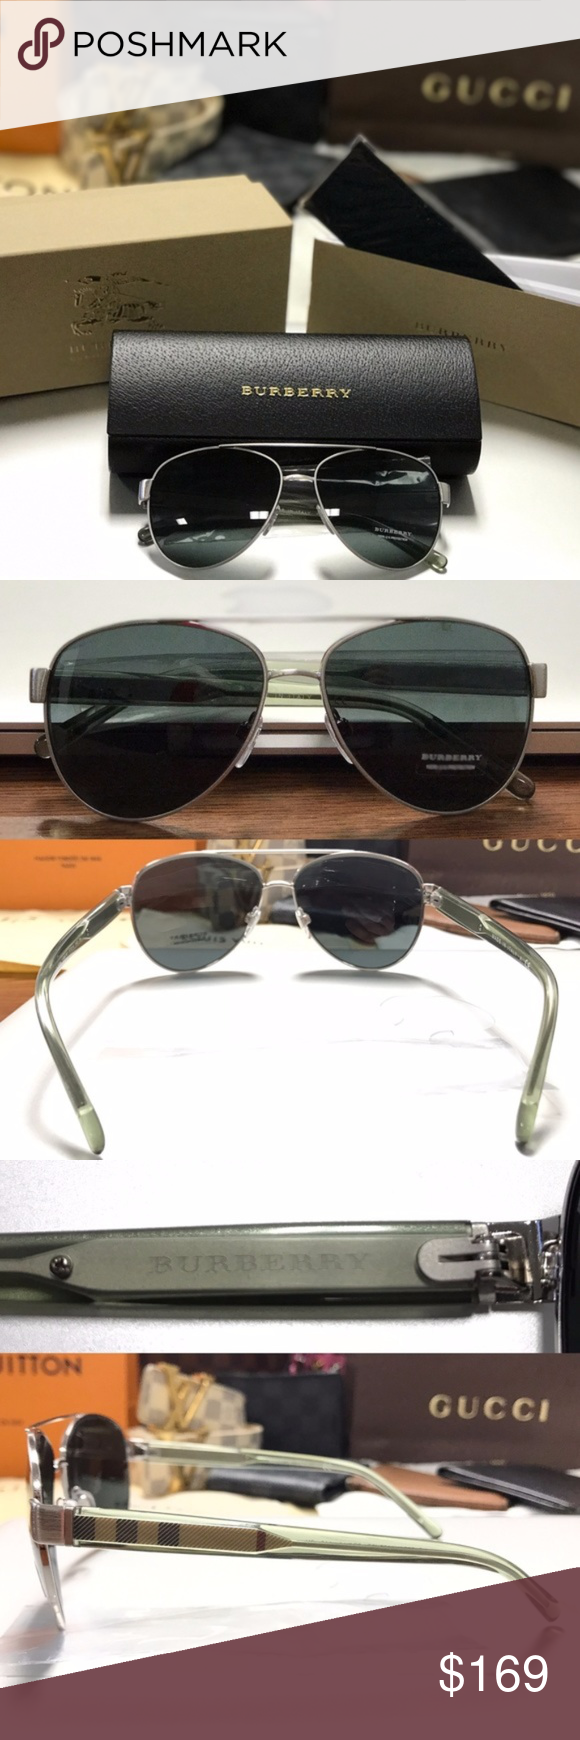 394355878eb7 NWT Authentic Burberry Aviator Sun Glasses New With Tags - 100% Authentic  Burberry BE 3084 Unisex Sunglass Shades Sunnies Womens / Mens Color:  Brushed ...